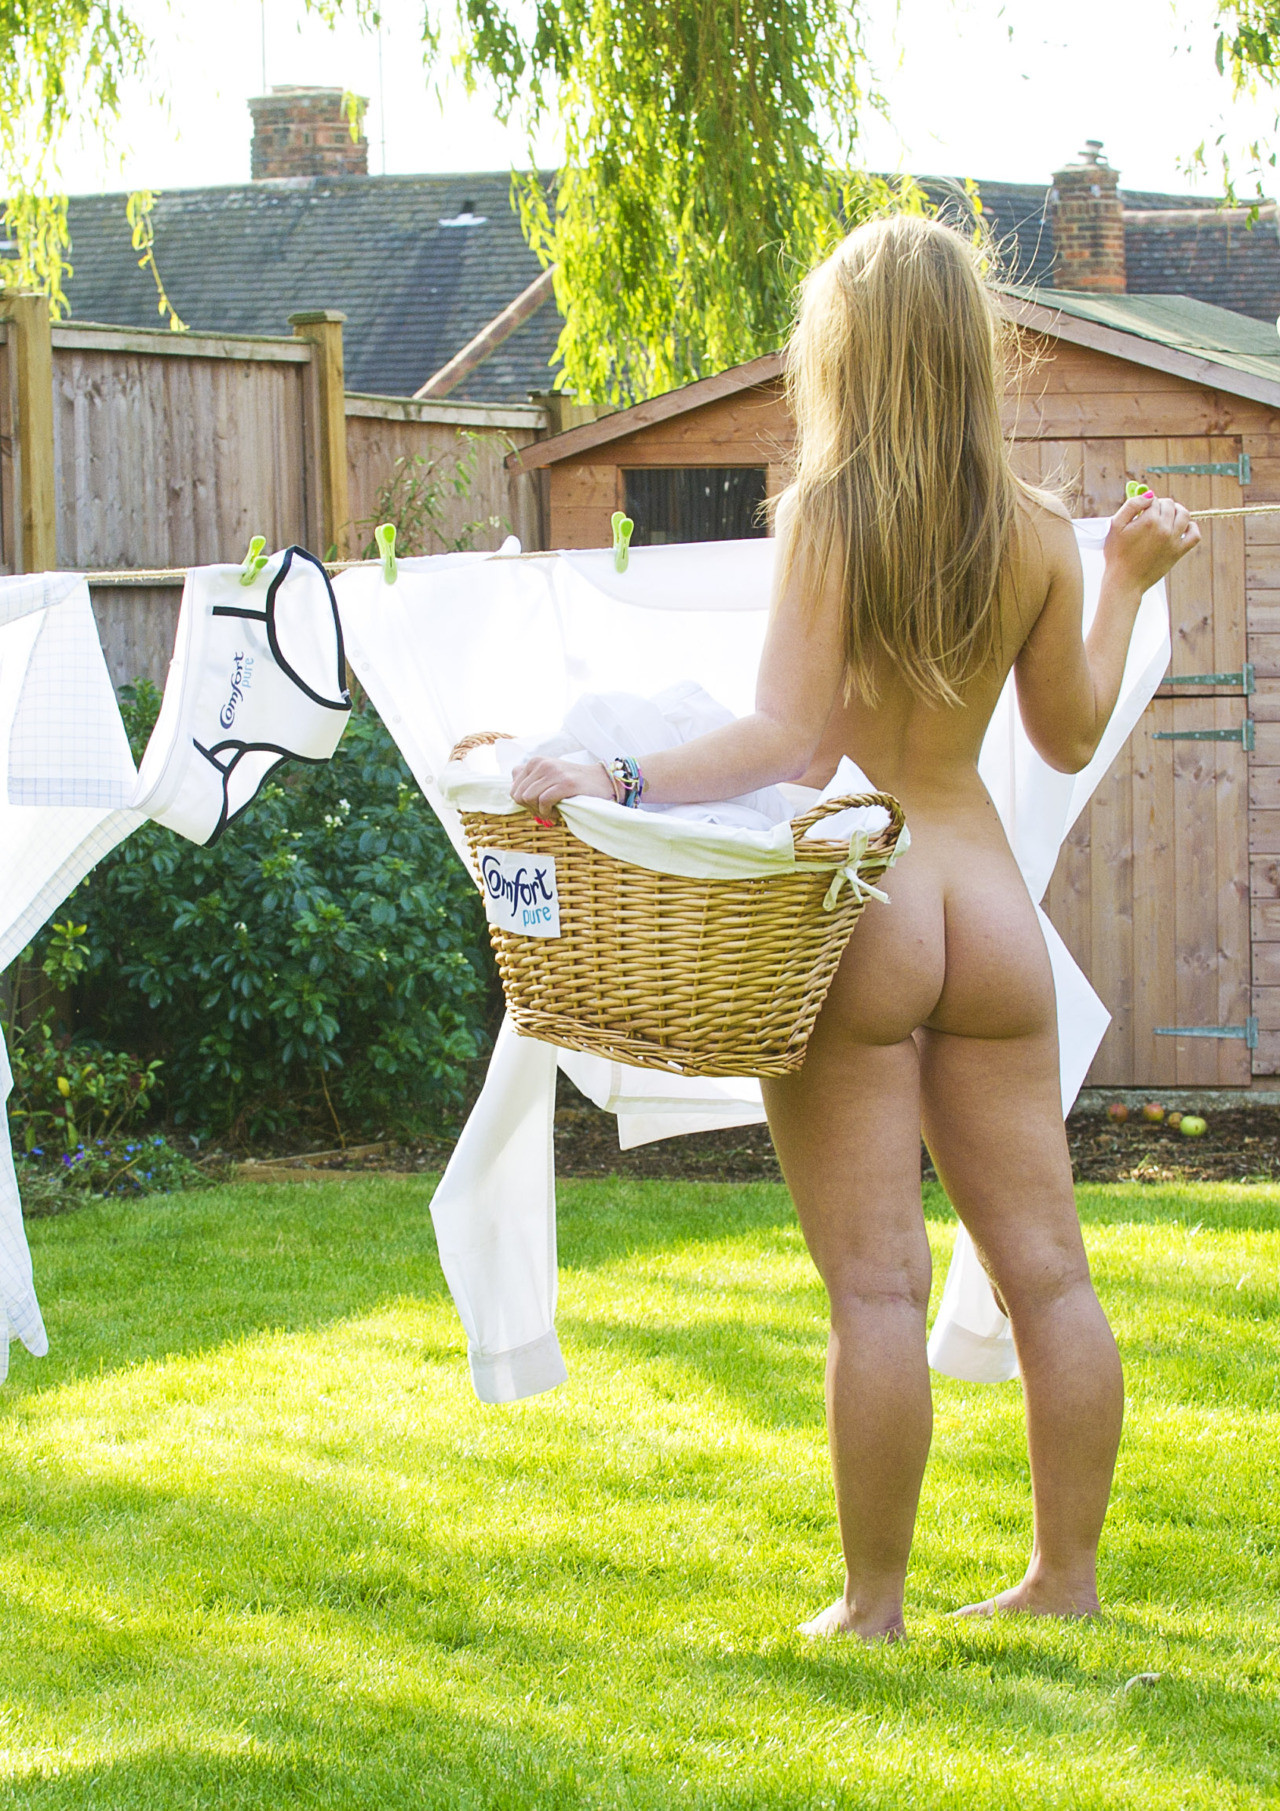 laundry-girls-nude-washing-machine-photo-mix-32